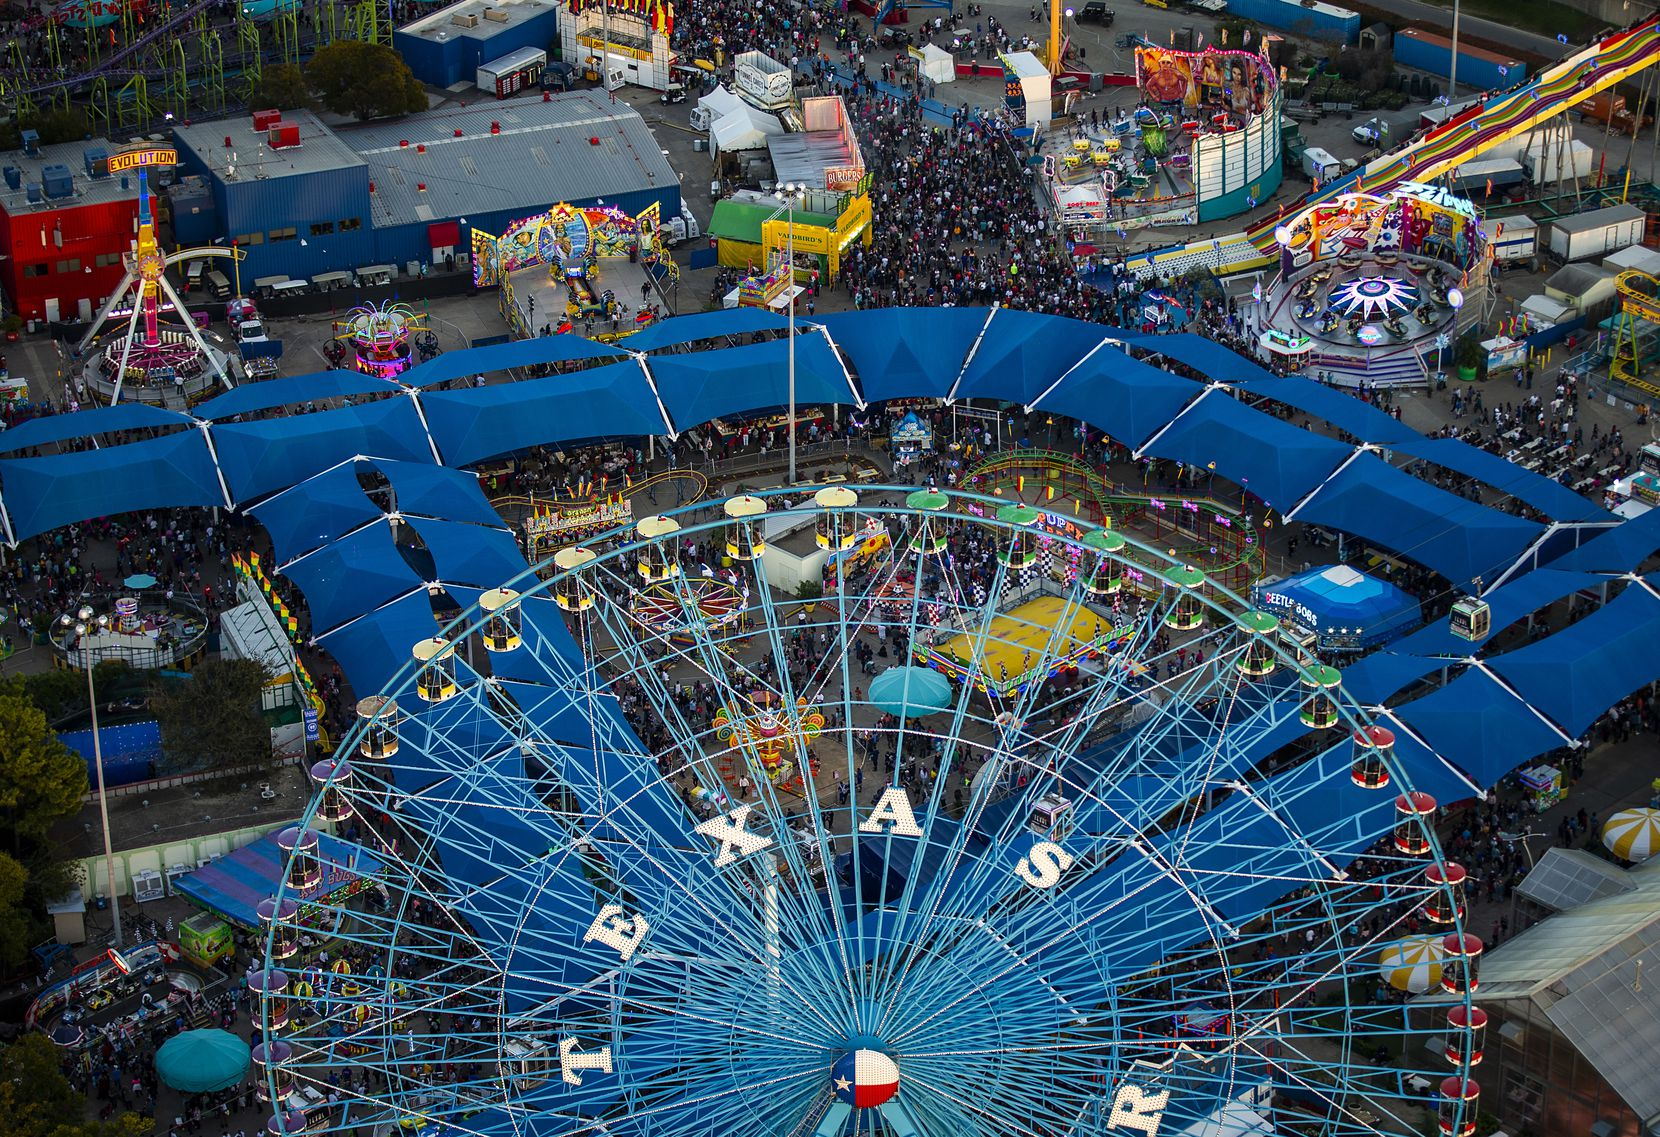 Crowds fill the midway at the State Fair of Texas in Fair Park on Saturday, Oct. 20, 2018, in Dallas.